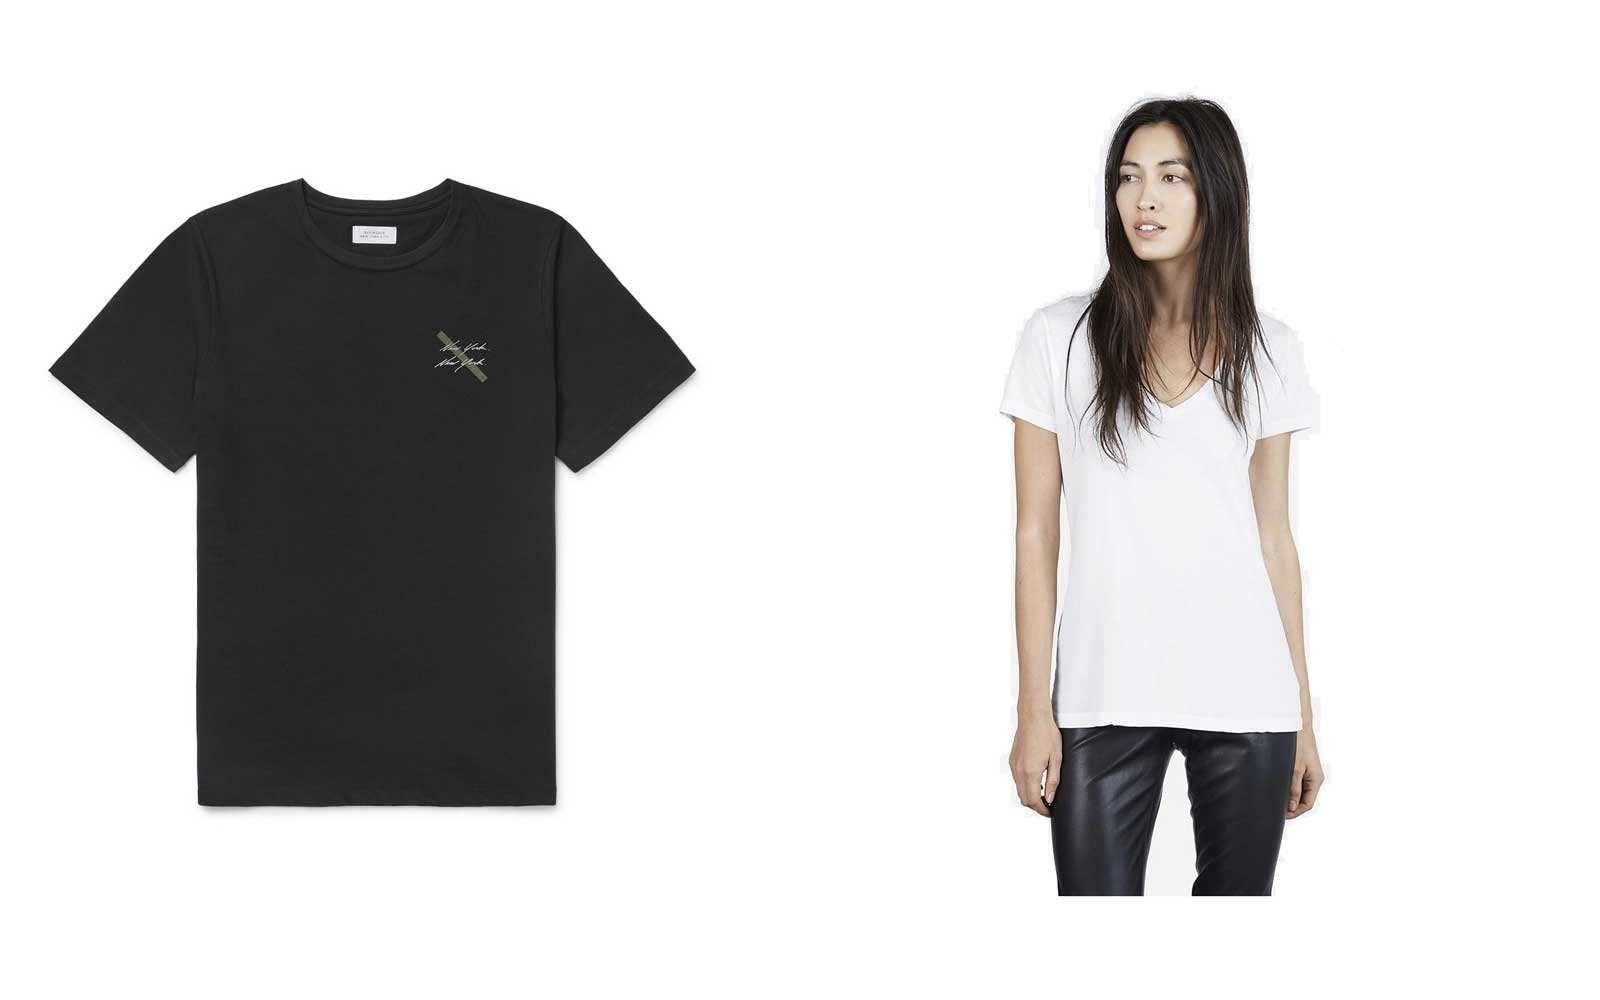 Stylish Travel Clothes For Men And Women Leisure Jolie Clothing Rhey Tulle Skirt T Shirts From Saturdays Everlane